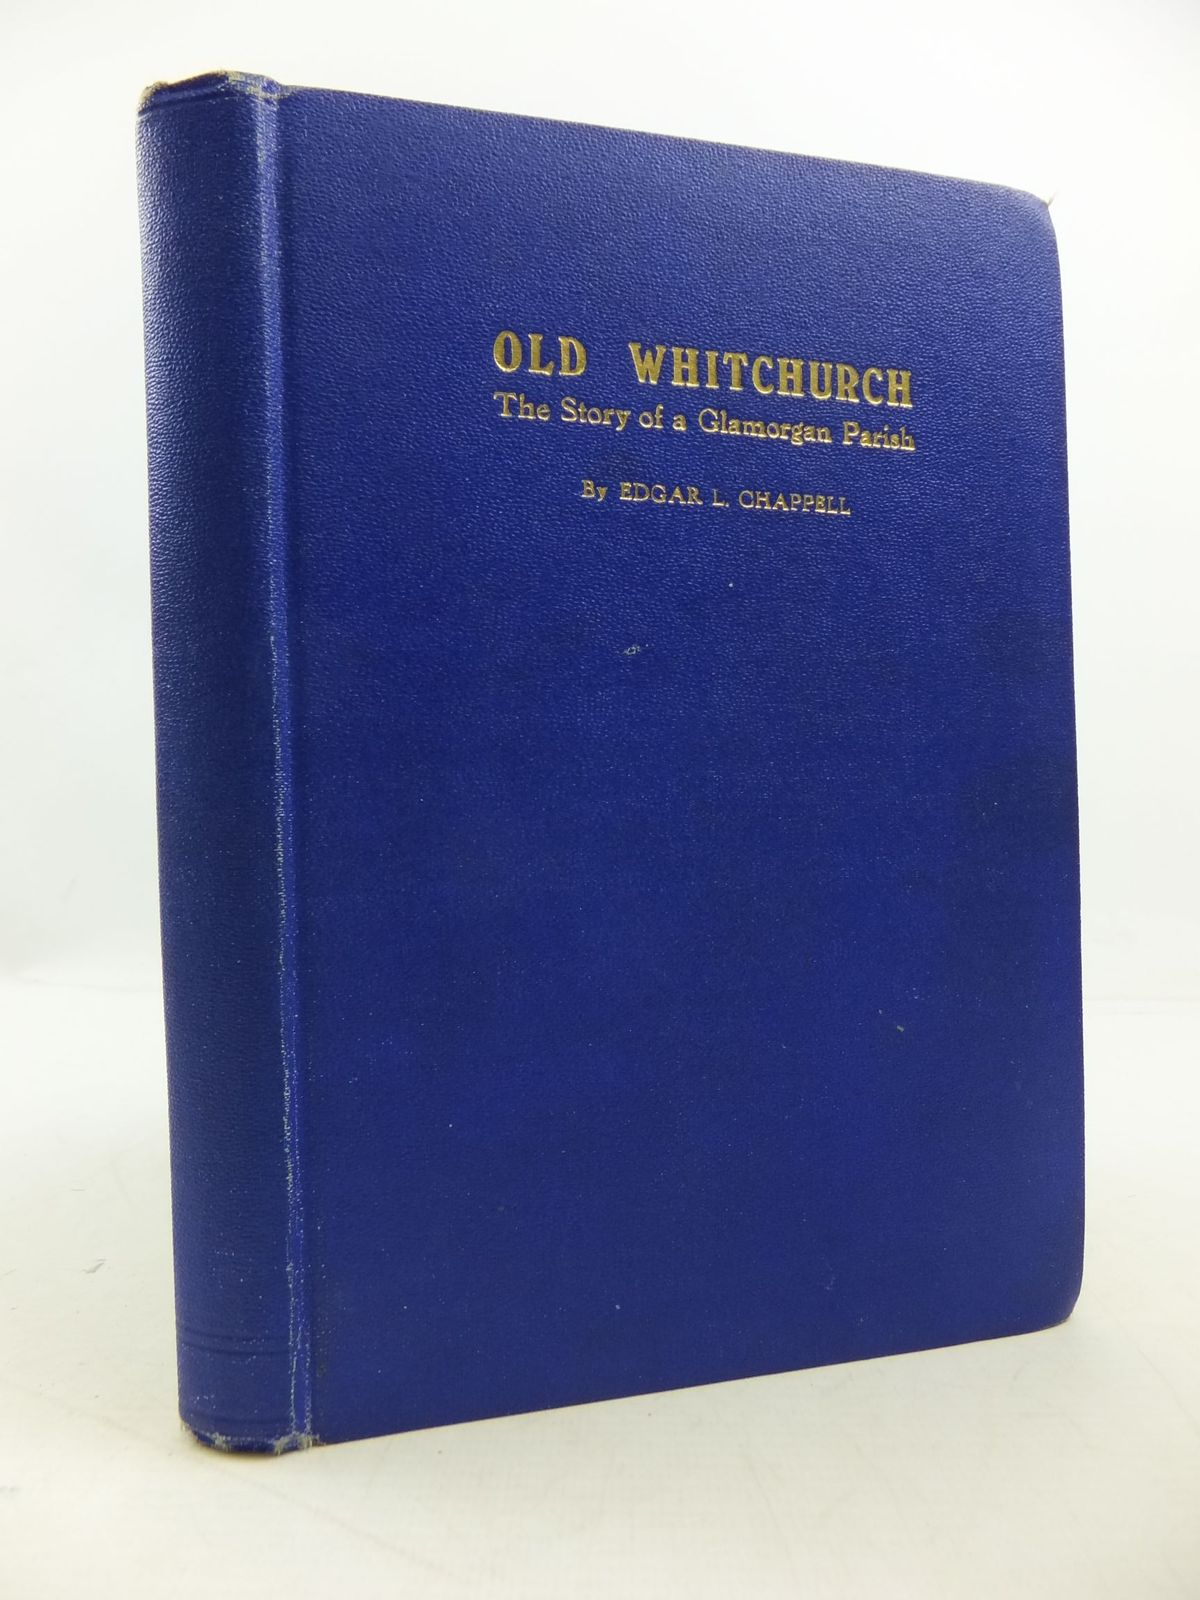 Photo of OLD WHITCHURCH THE STORY OF A GLAMORGAN PARISH. written by Chappell, Edgar L. published by Priory Press Limited (STOCK CODE: 1709372)  for sale by Stella & Rose's Books